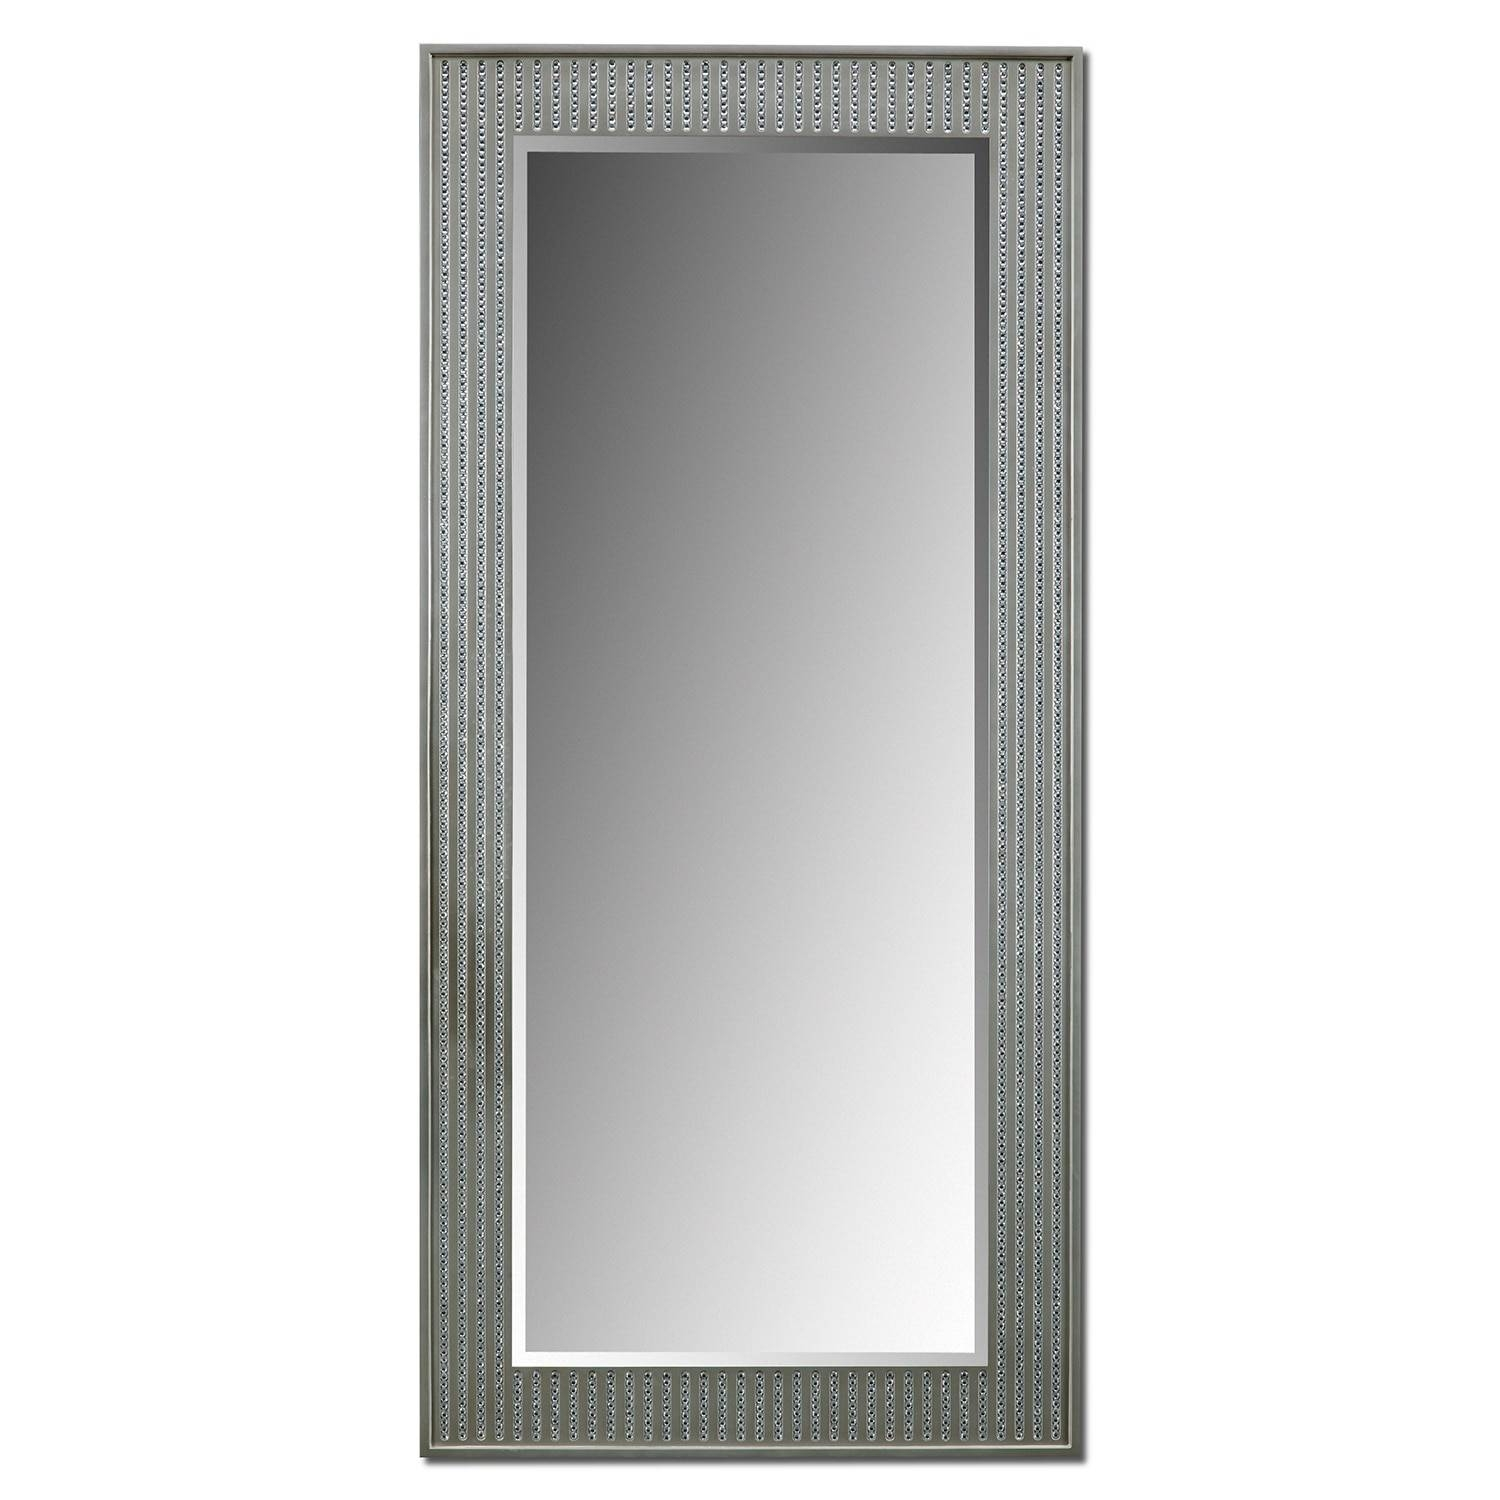 Bling Glam Floor Mirror – Silver | Value City Furniture And Mattresses With Bling Floor Mirrors (View 5 of 15)